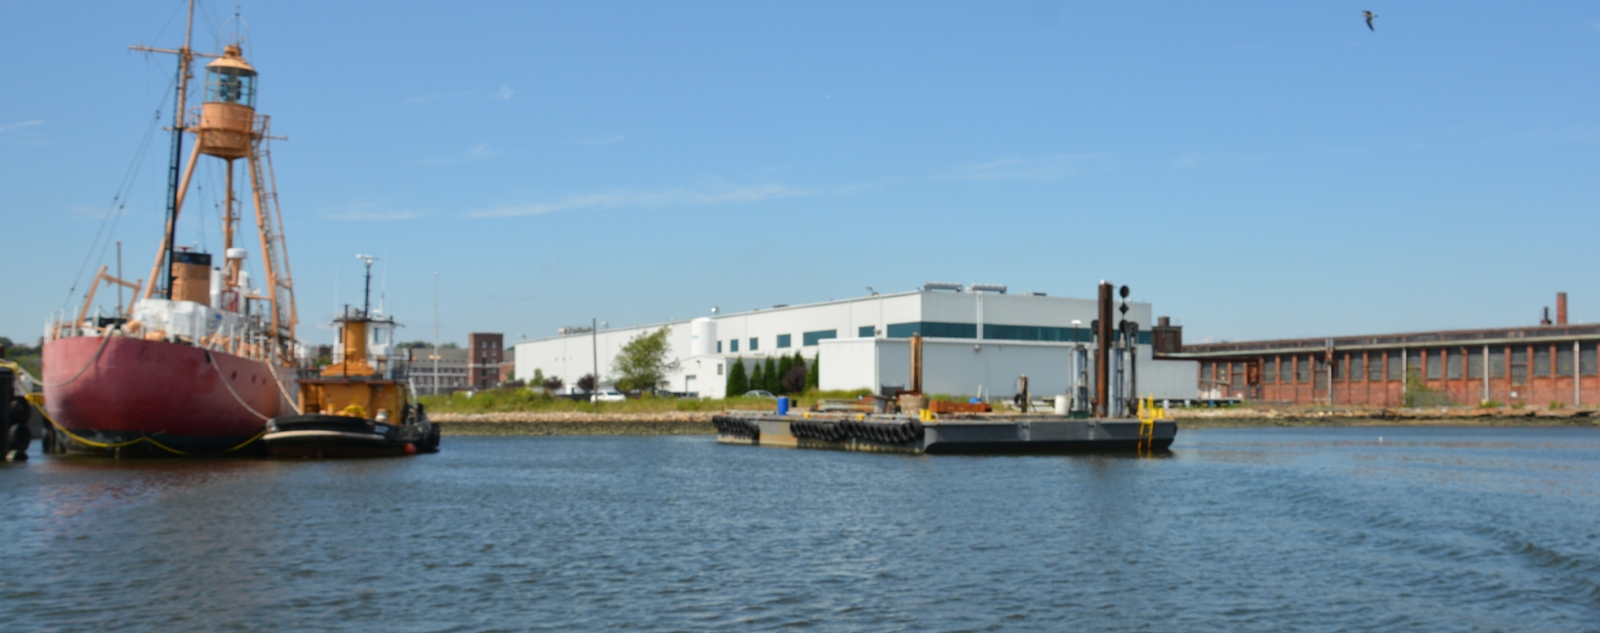 Home to our beautiful new waterfront facility